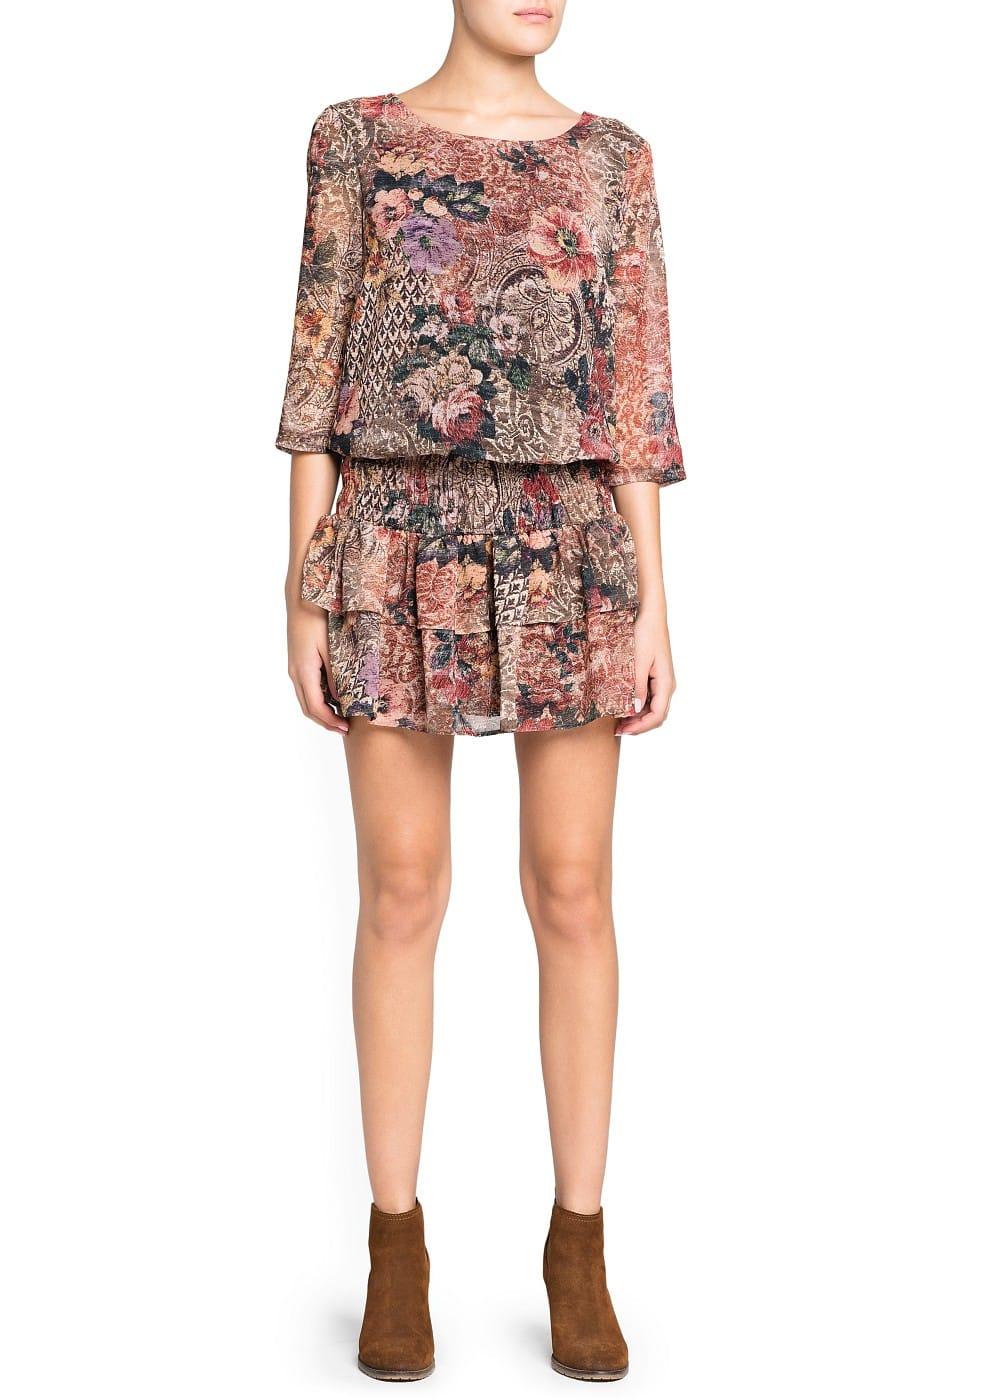 Ruffled tapestry print dress